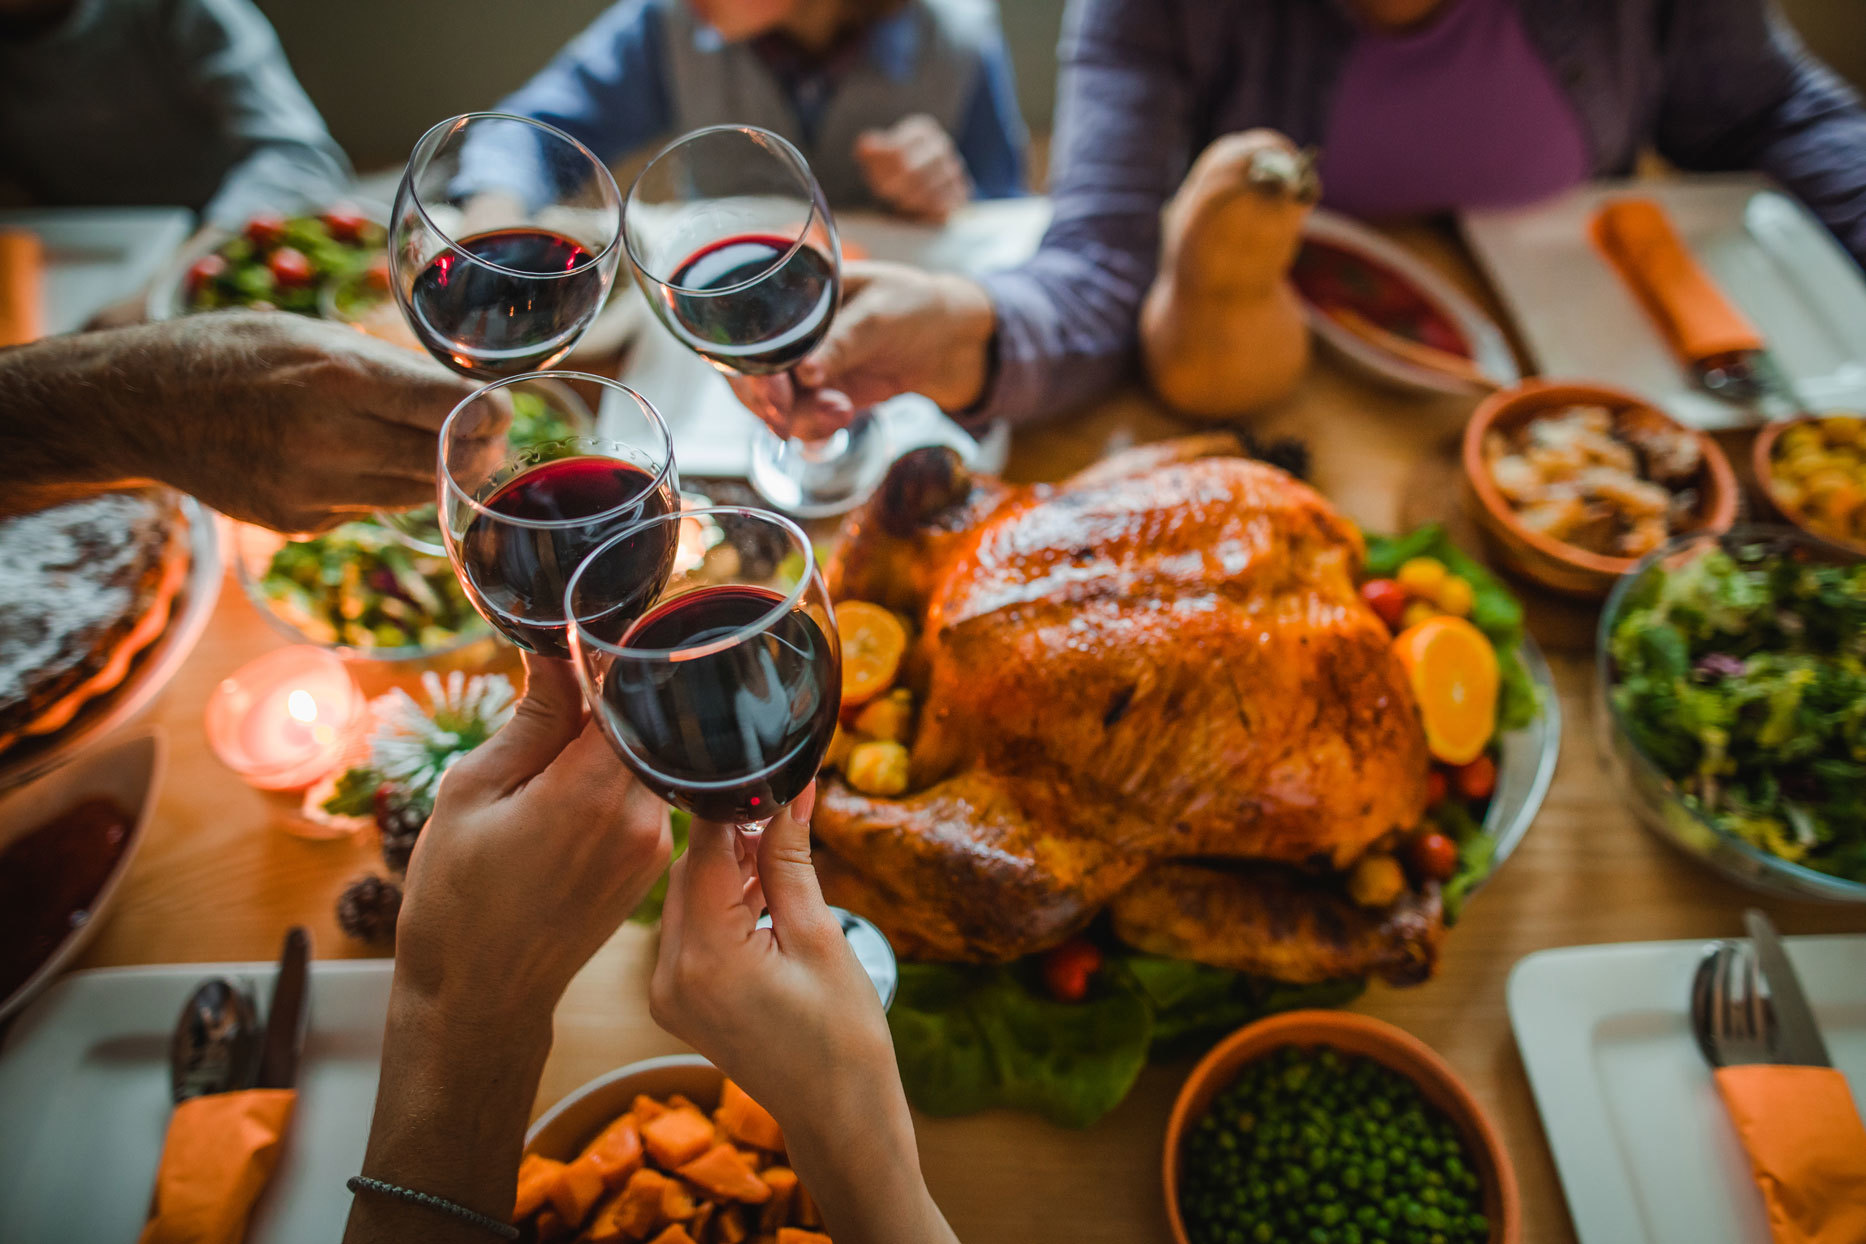 table set with Thanksgiving dinner with hands raising their wine glasses for a cheers